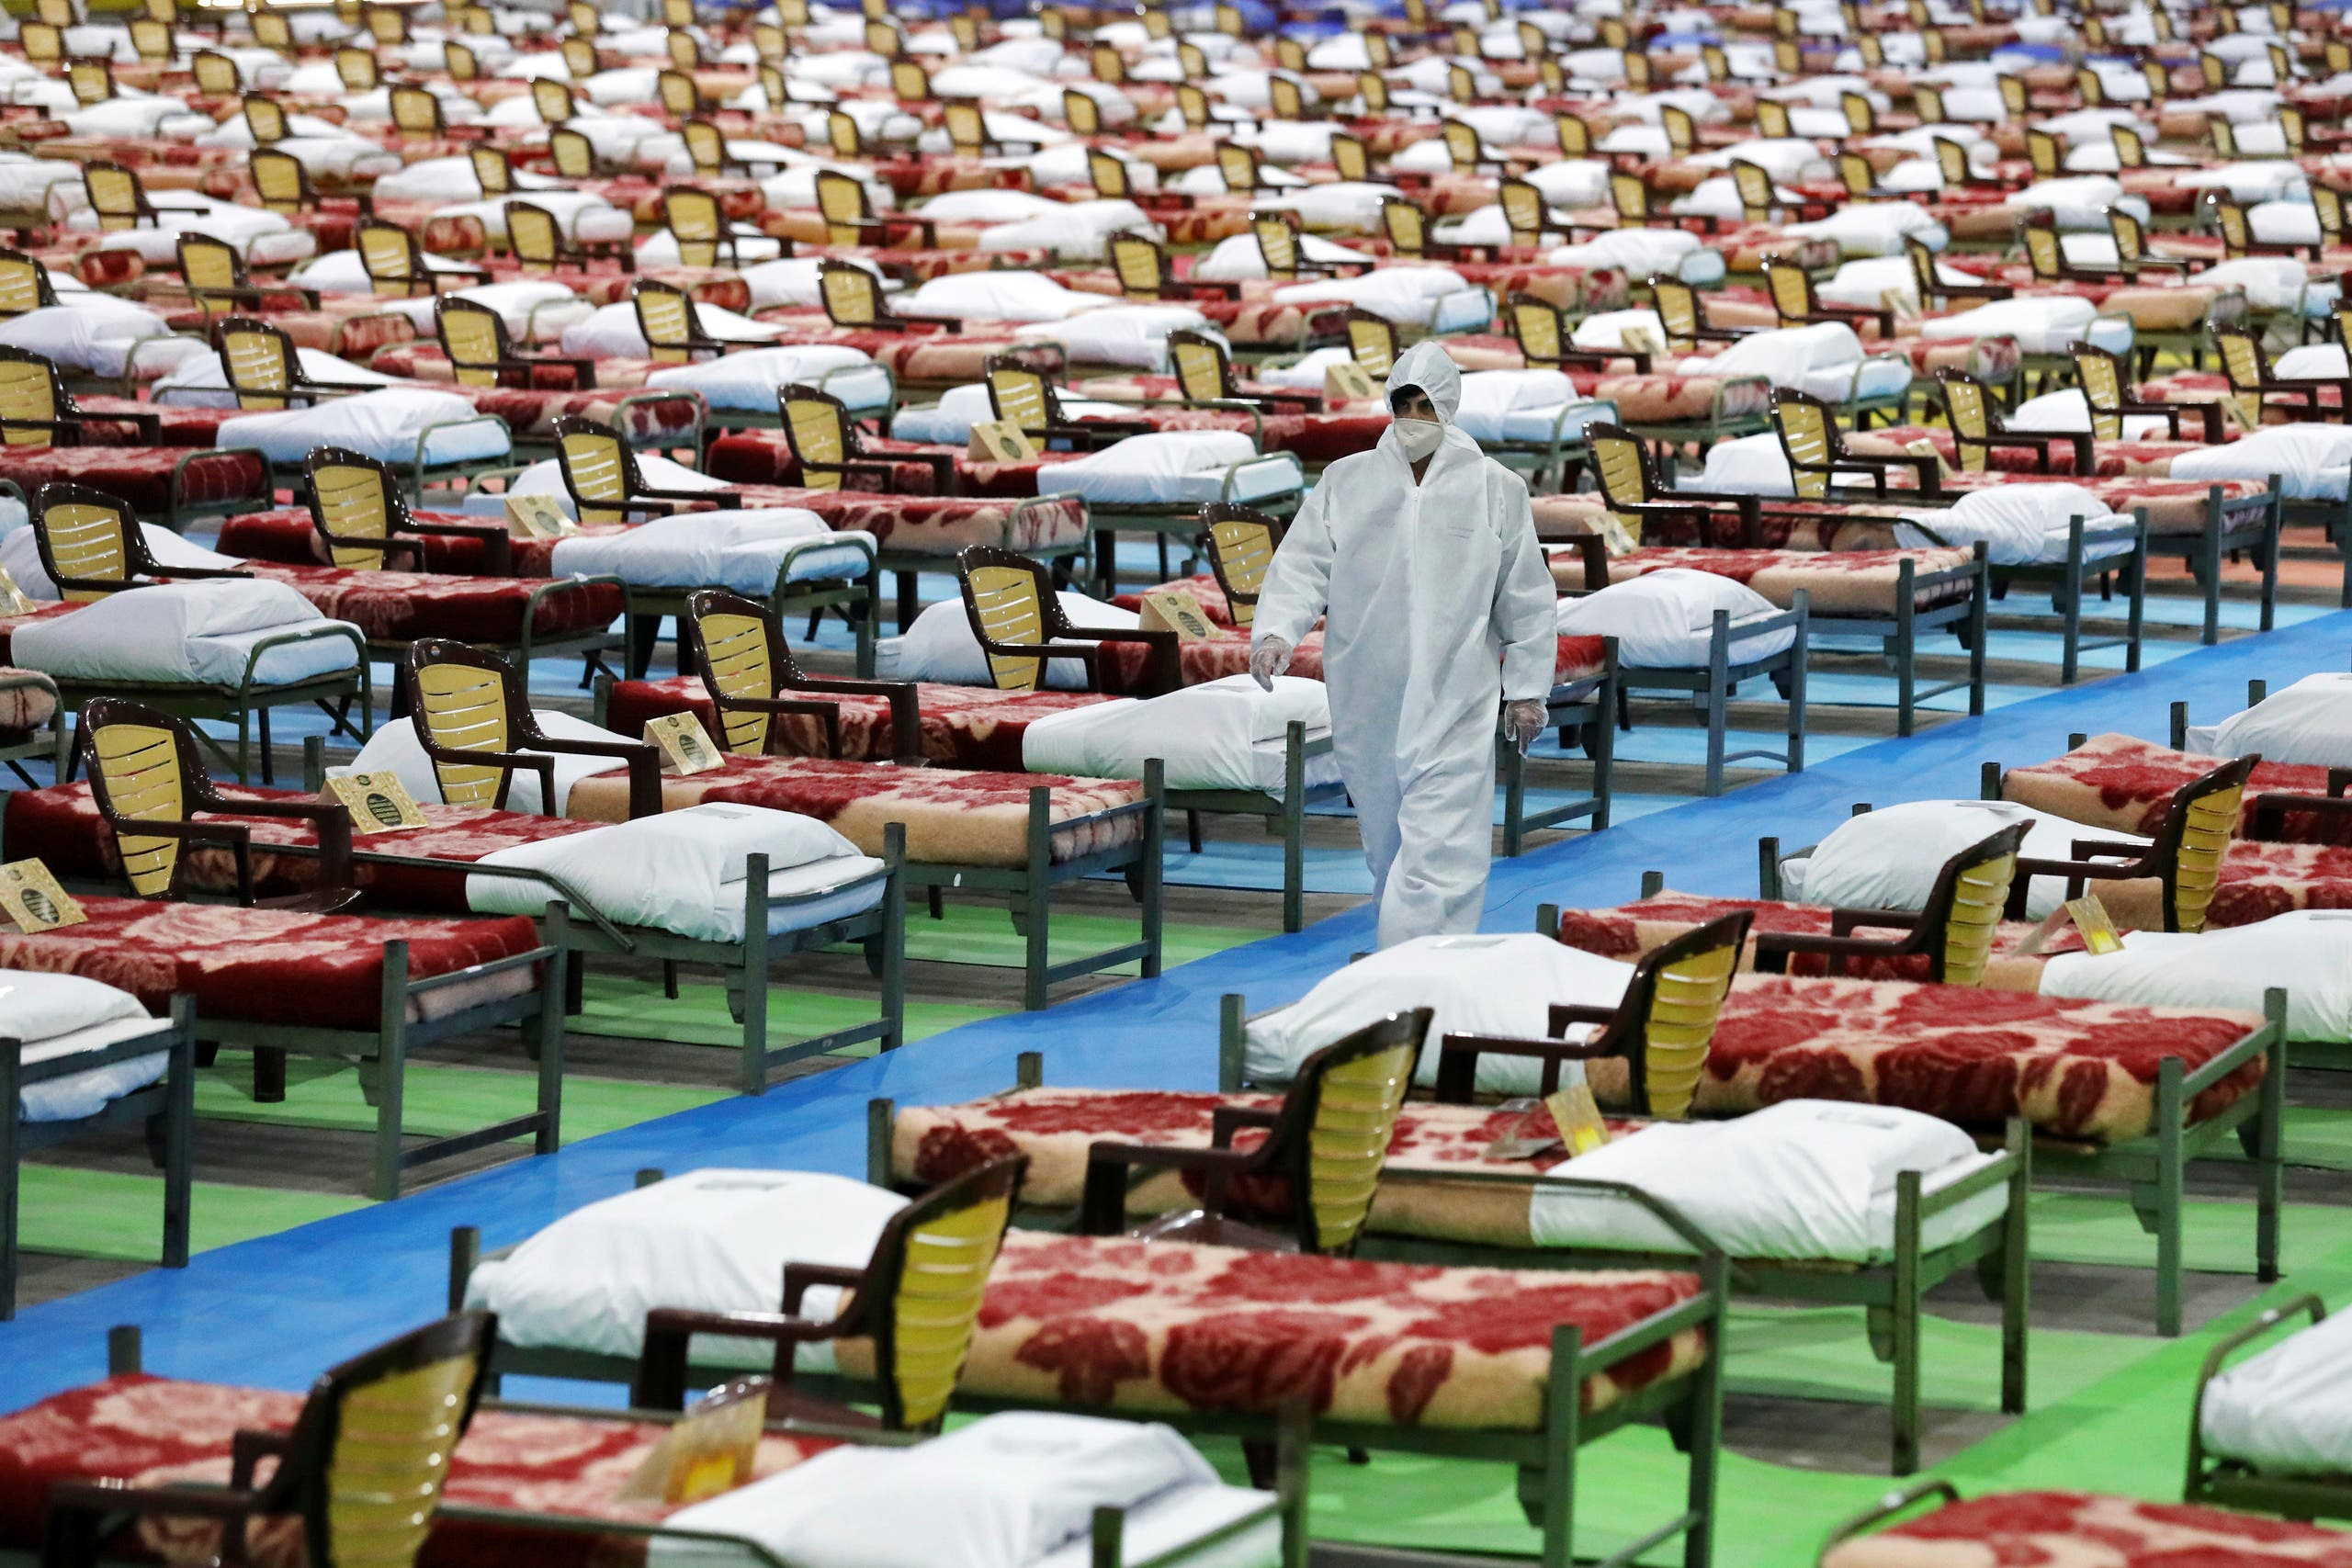 People in protective clothing walk past rows of beds at a temporary 2,000-bed hospital for COVID-19 patients set up by the Iranian army in northern Tehran, Iran, on Thursday, March 26, 2020. (AP)